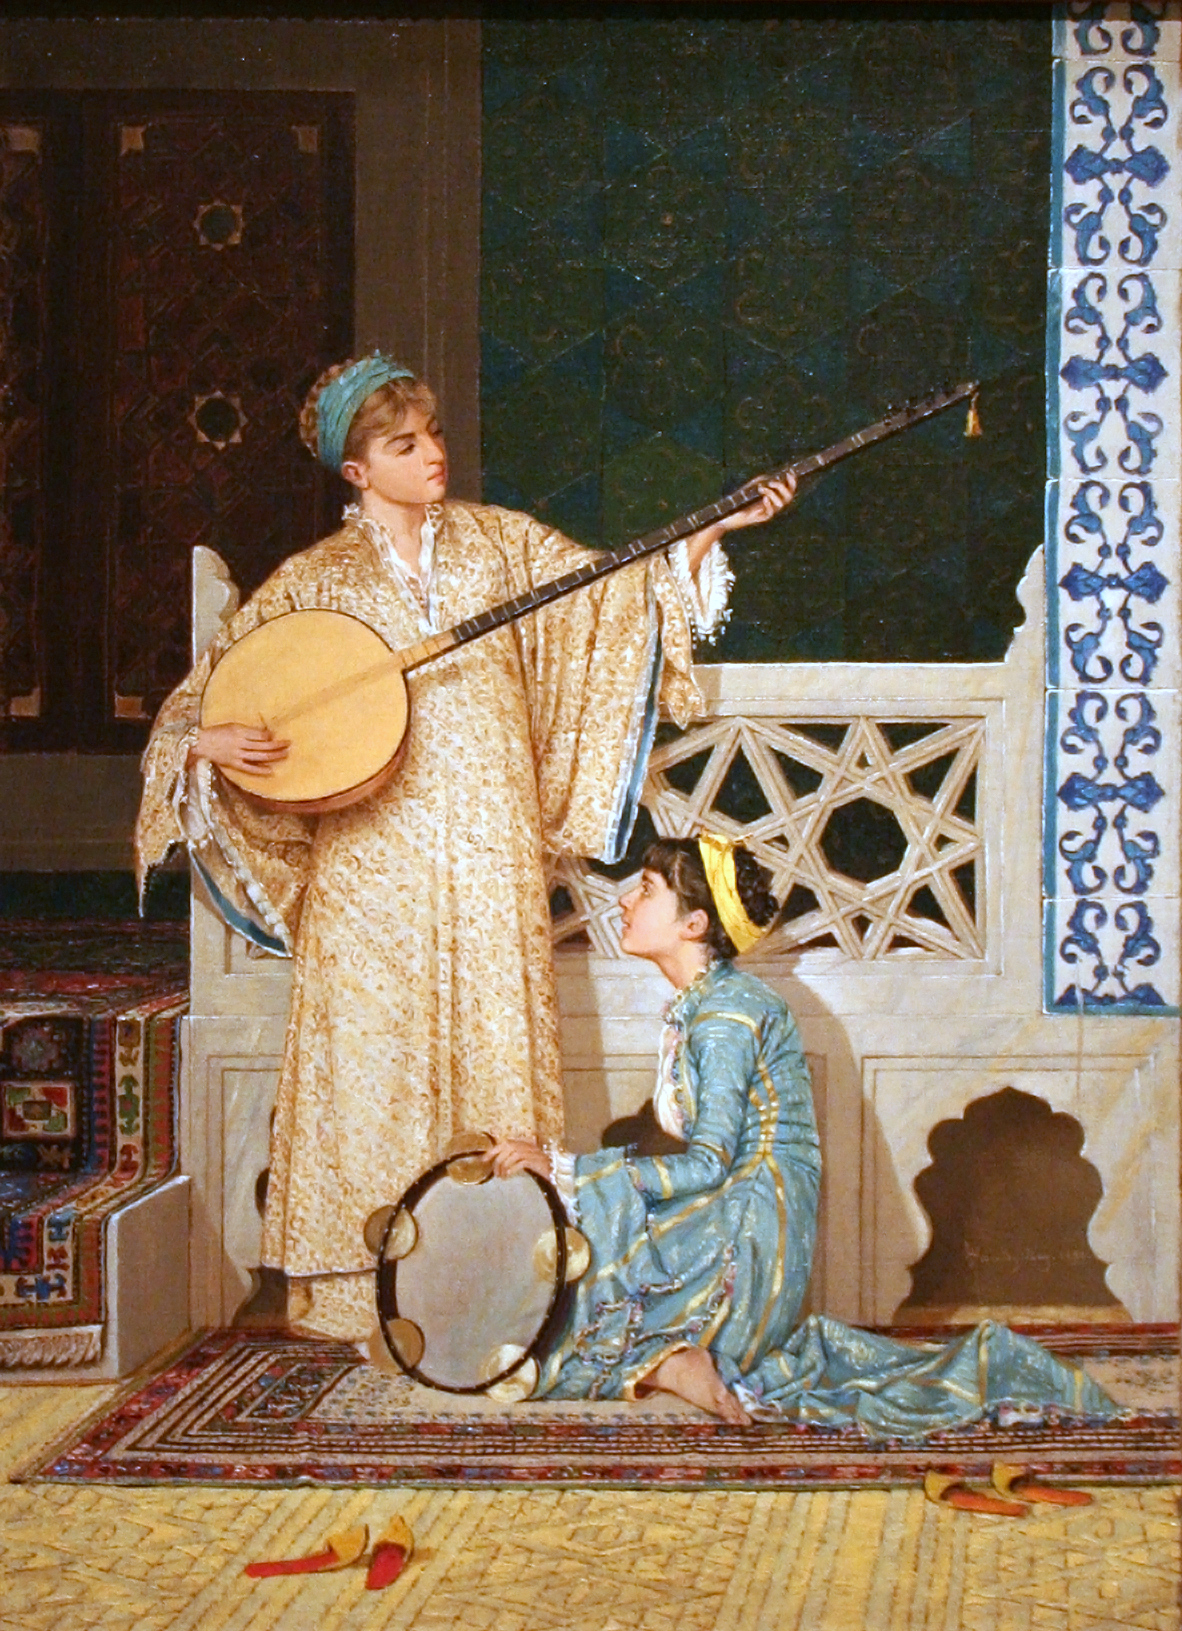 Best depictions of music in paintings: Osman Hamdi Bey, Two Musician Girls, ca. 1880. Wikipedia.